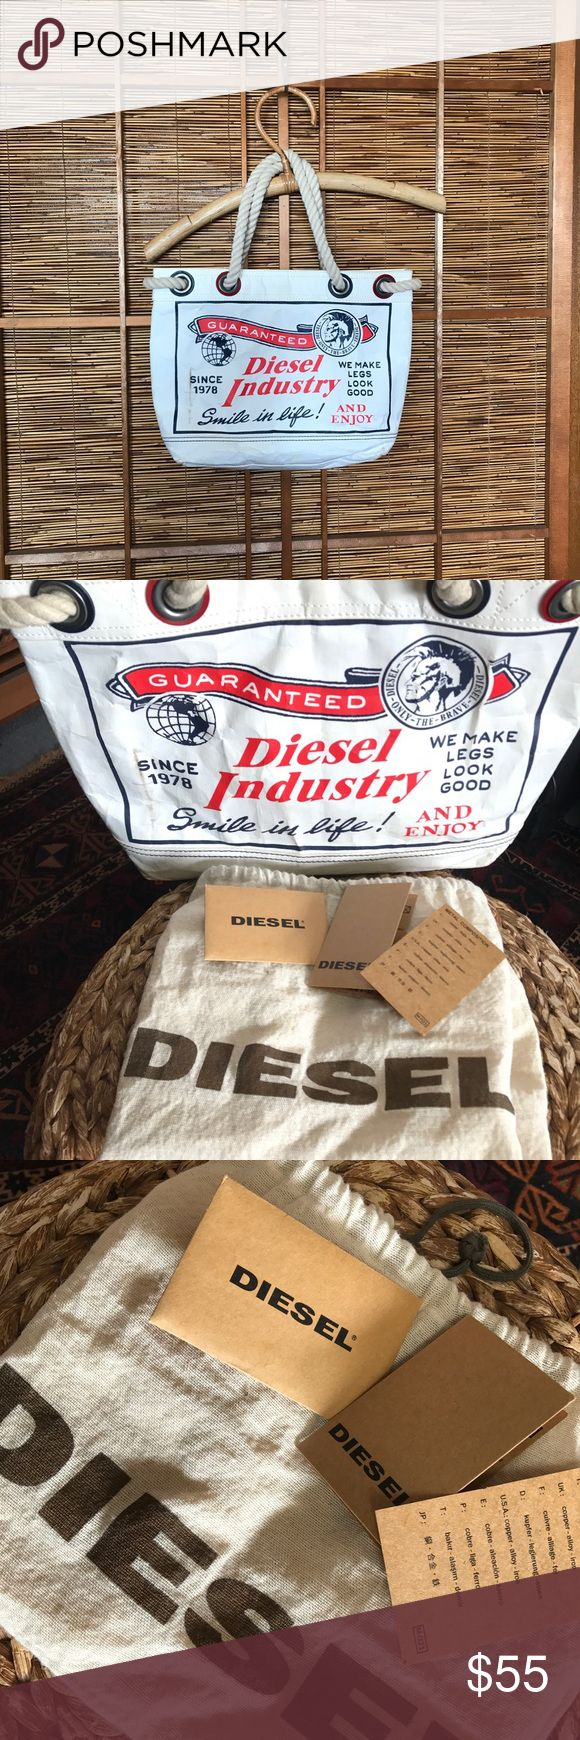 Diesel paper bag tote bag purse w dustbag Great bag by Diesel. Possibly Japan only. Made of heavy duty paper with rope handle. Not in perfect condition but at the same time it doesn't look used. There are a few marks on it. Possibly could be cleaned with magic eraser. Comes with dust bag and cardboard card( see pics) Diesel Bags Mini Bags